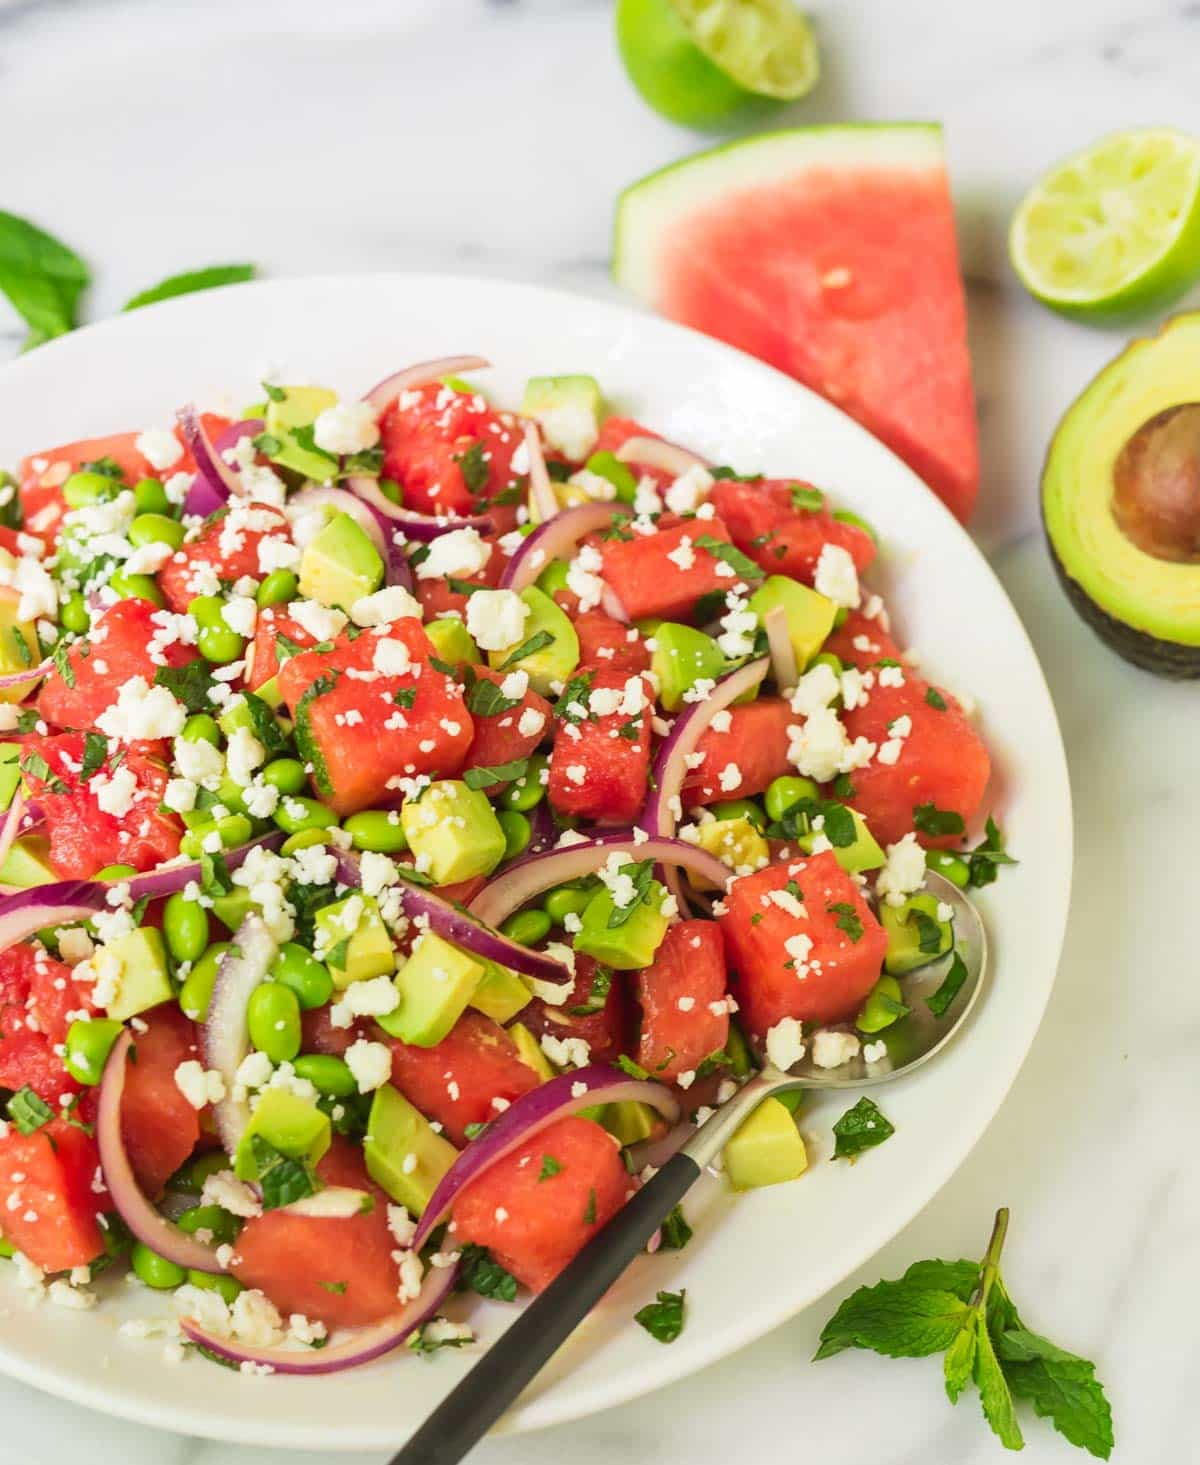 Refreshing watermelon salad in a serving bowl